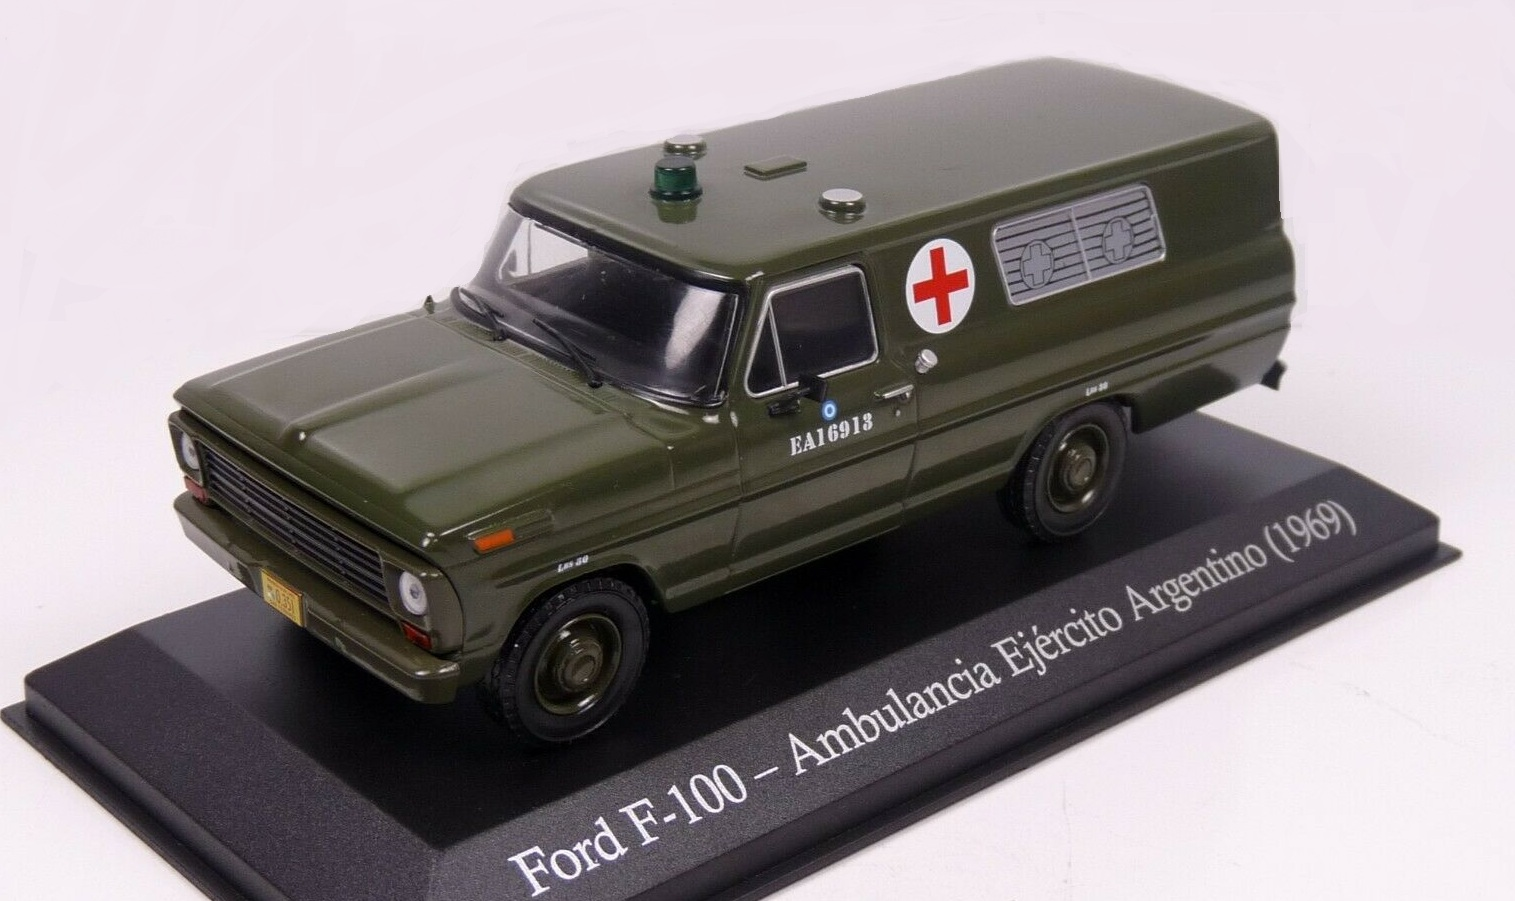 Ford F-100 Ambulancia Ejercito Argentino army - 1969 1:43 časopis s modelem